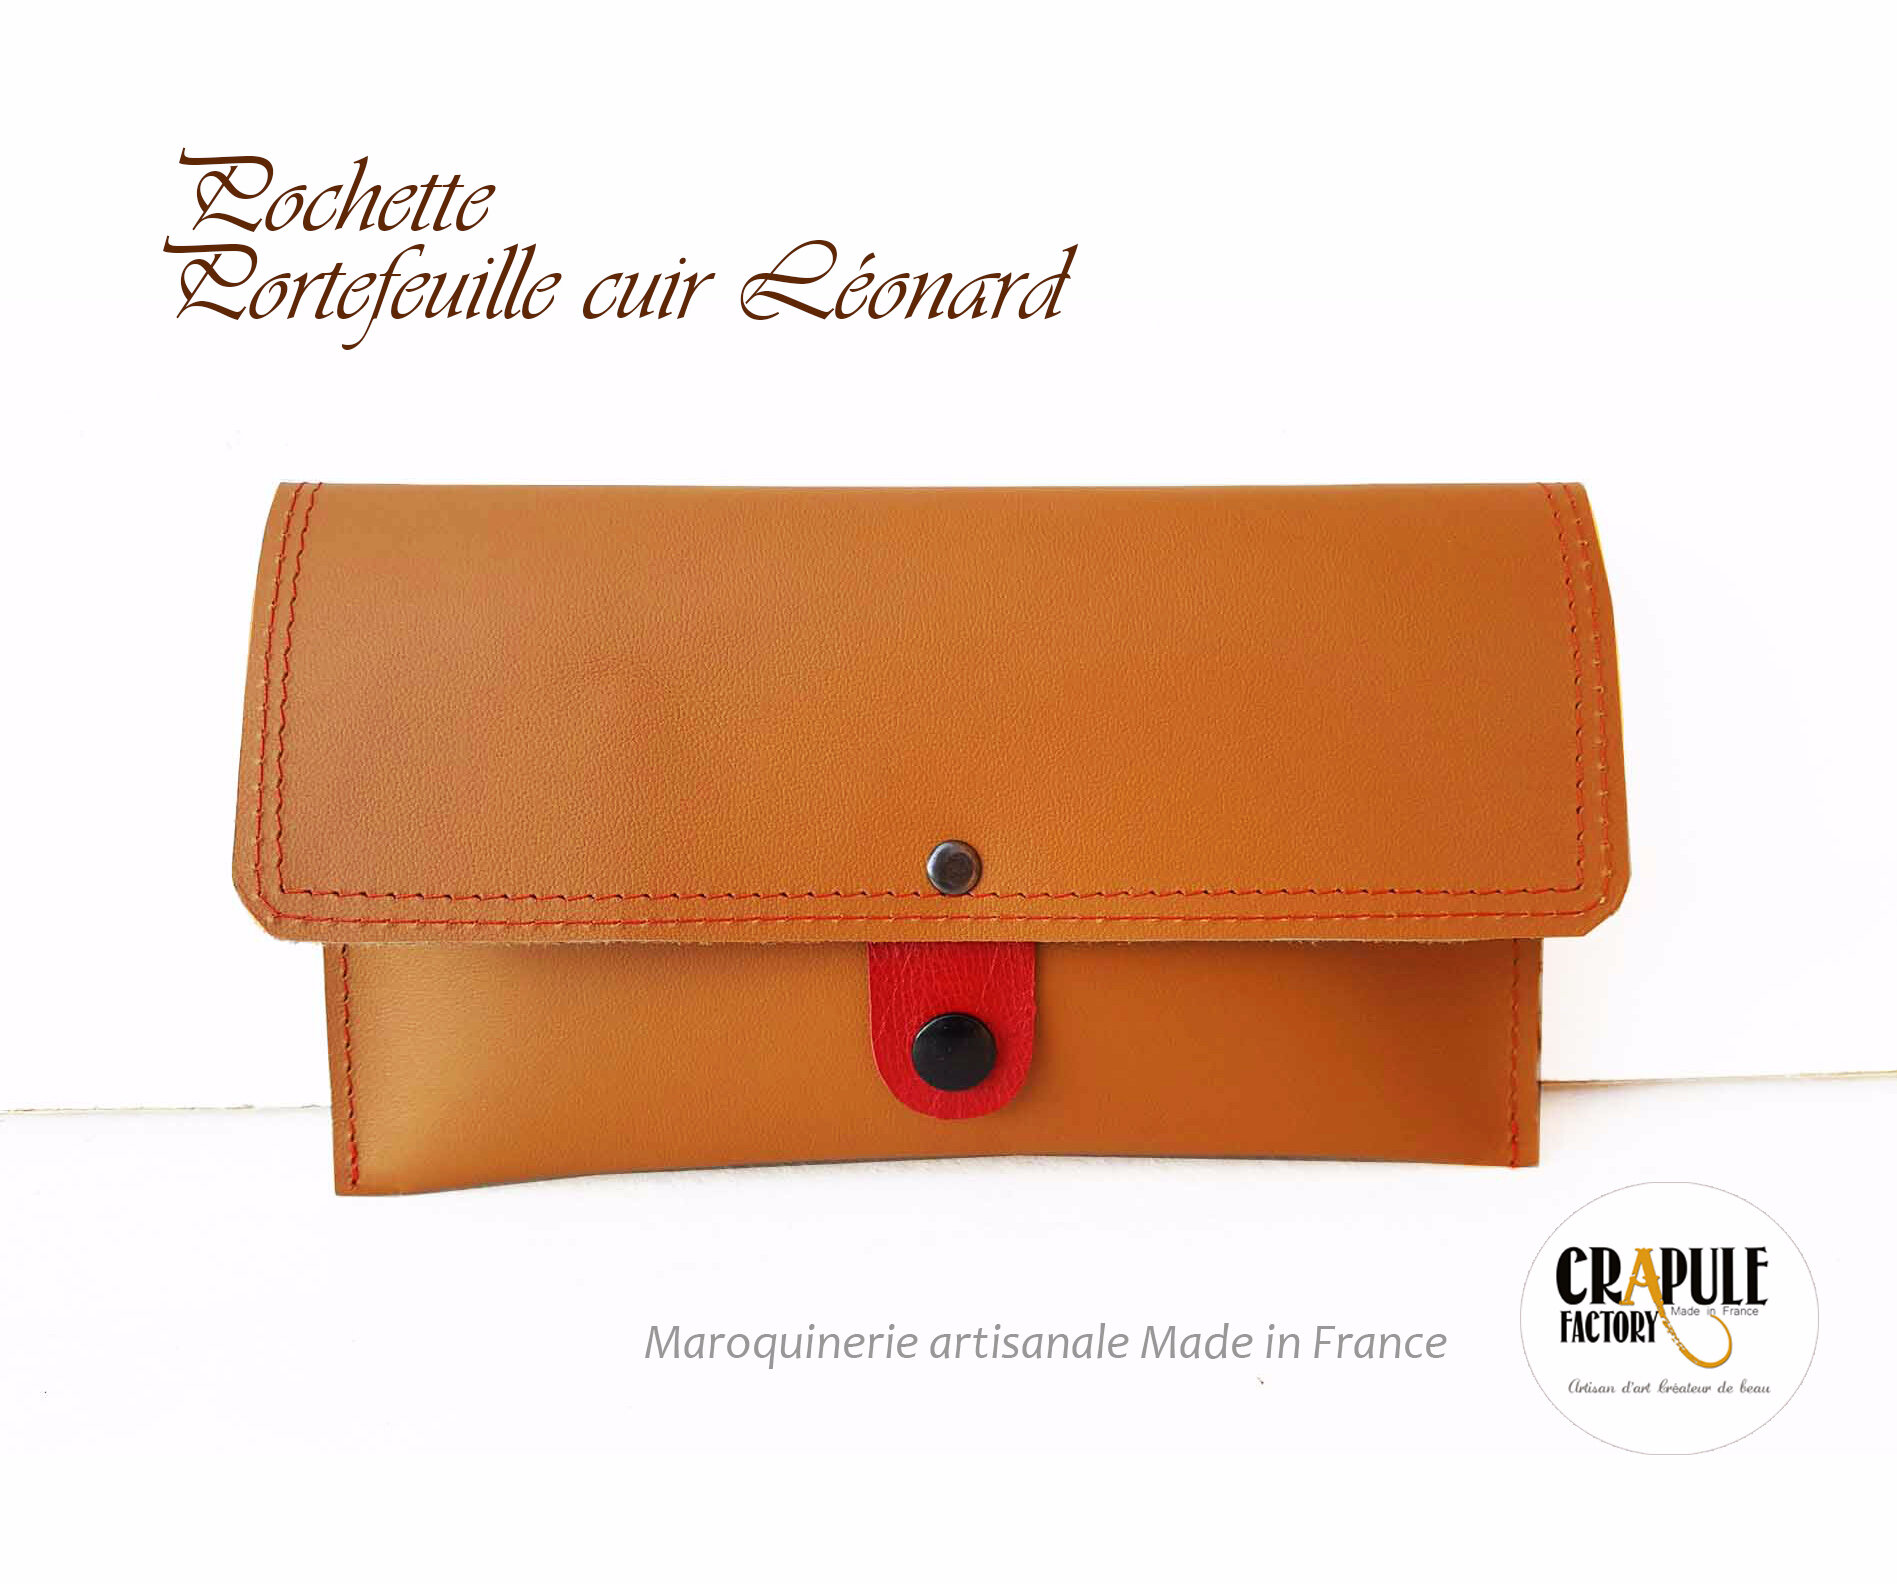 Pochette, portefeuille CUIR - artisanat made in France - Collection LEONARD fdd72b45828